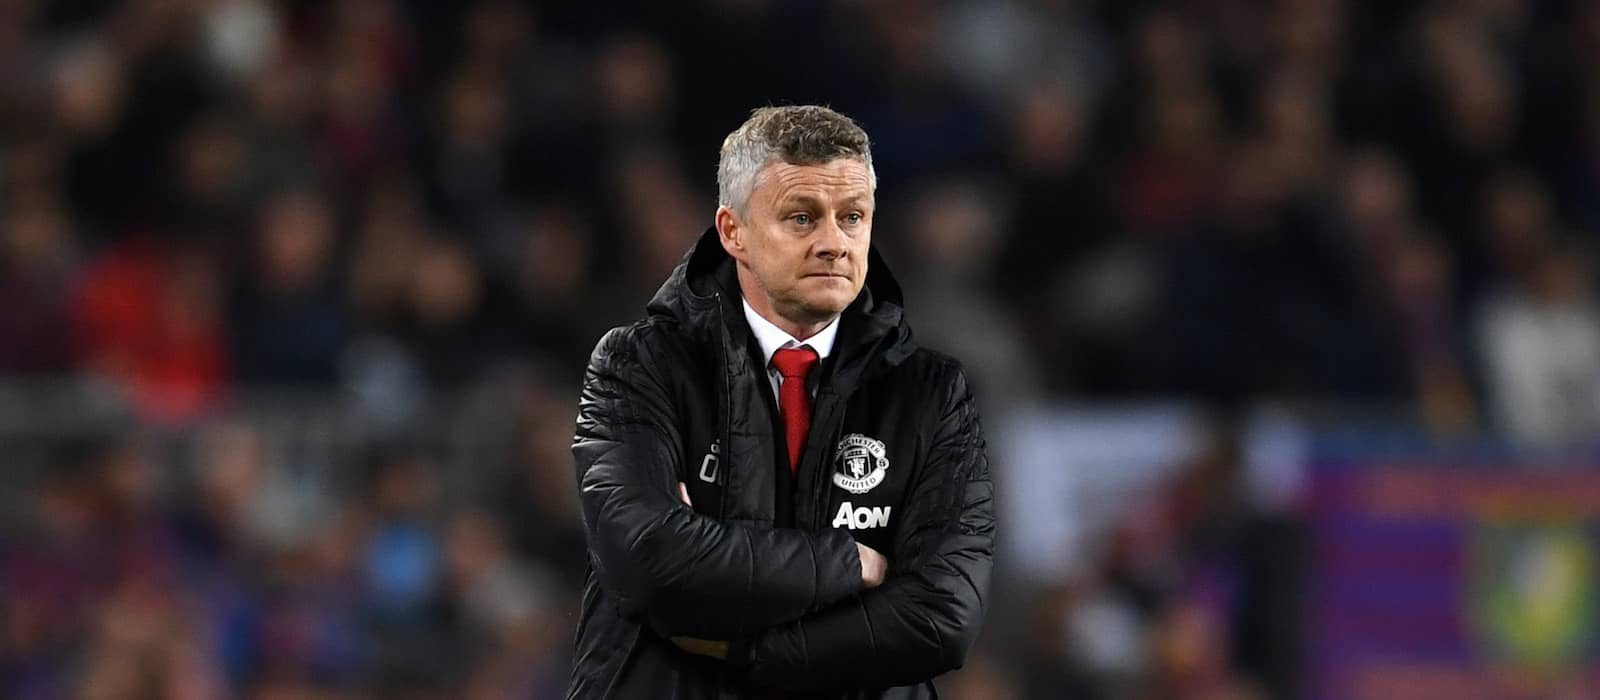 Manchester United board make transfer promise to Ole Gunnar Solskjaer: report